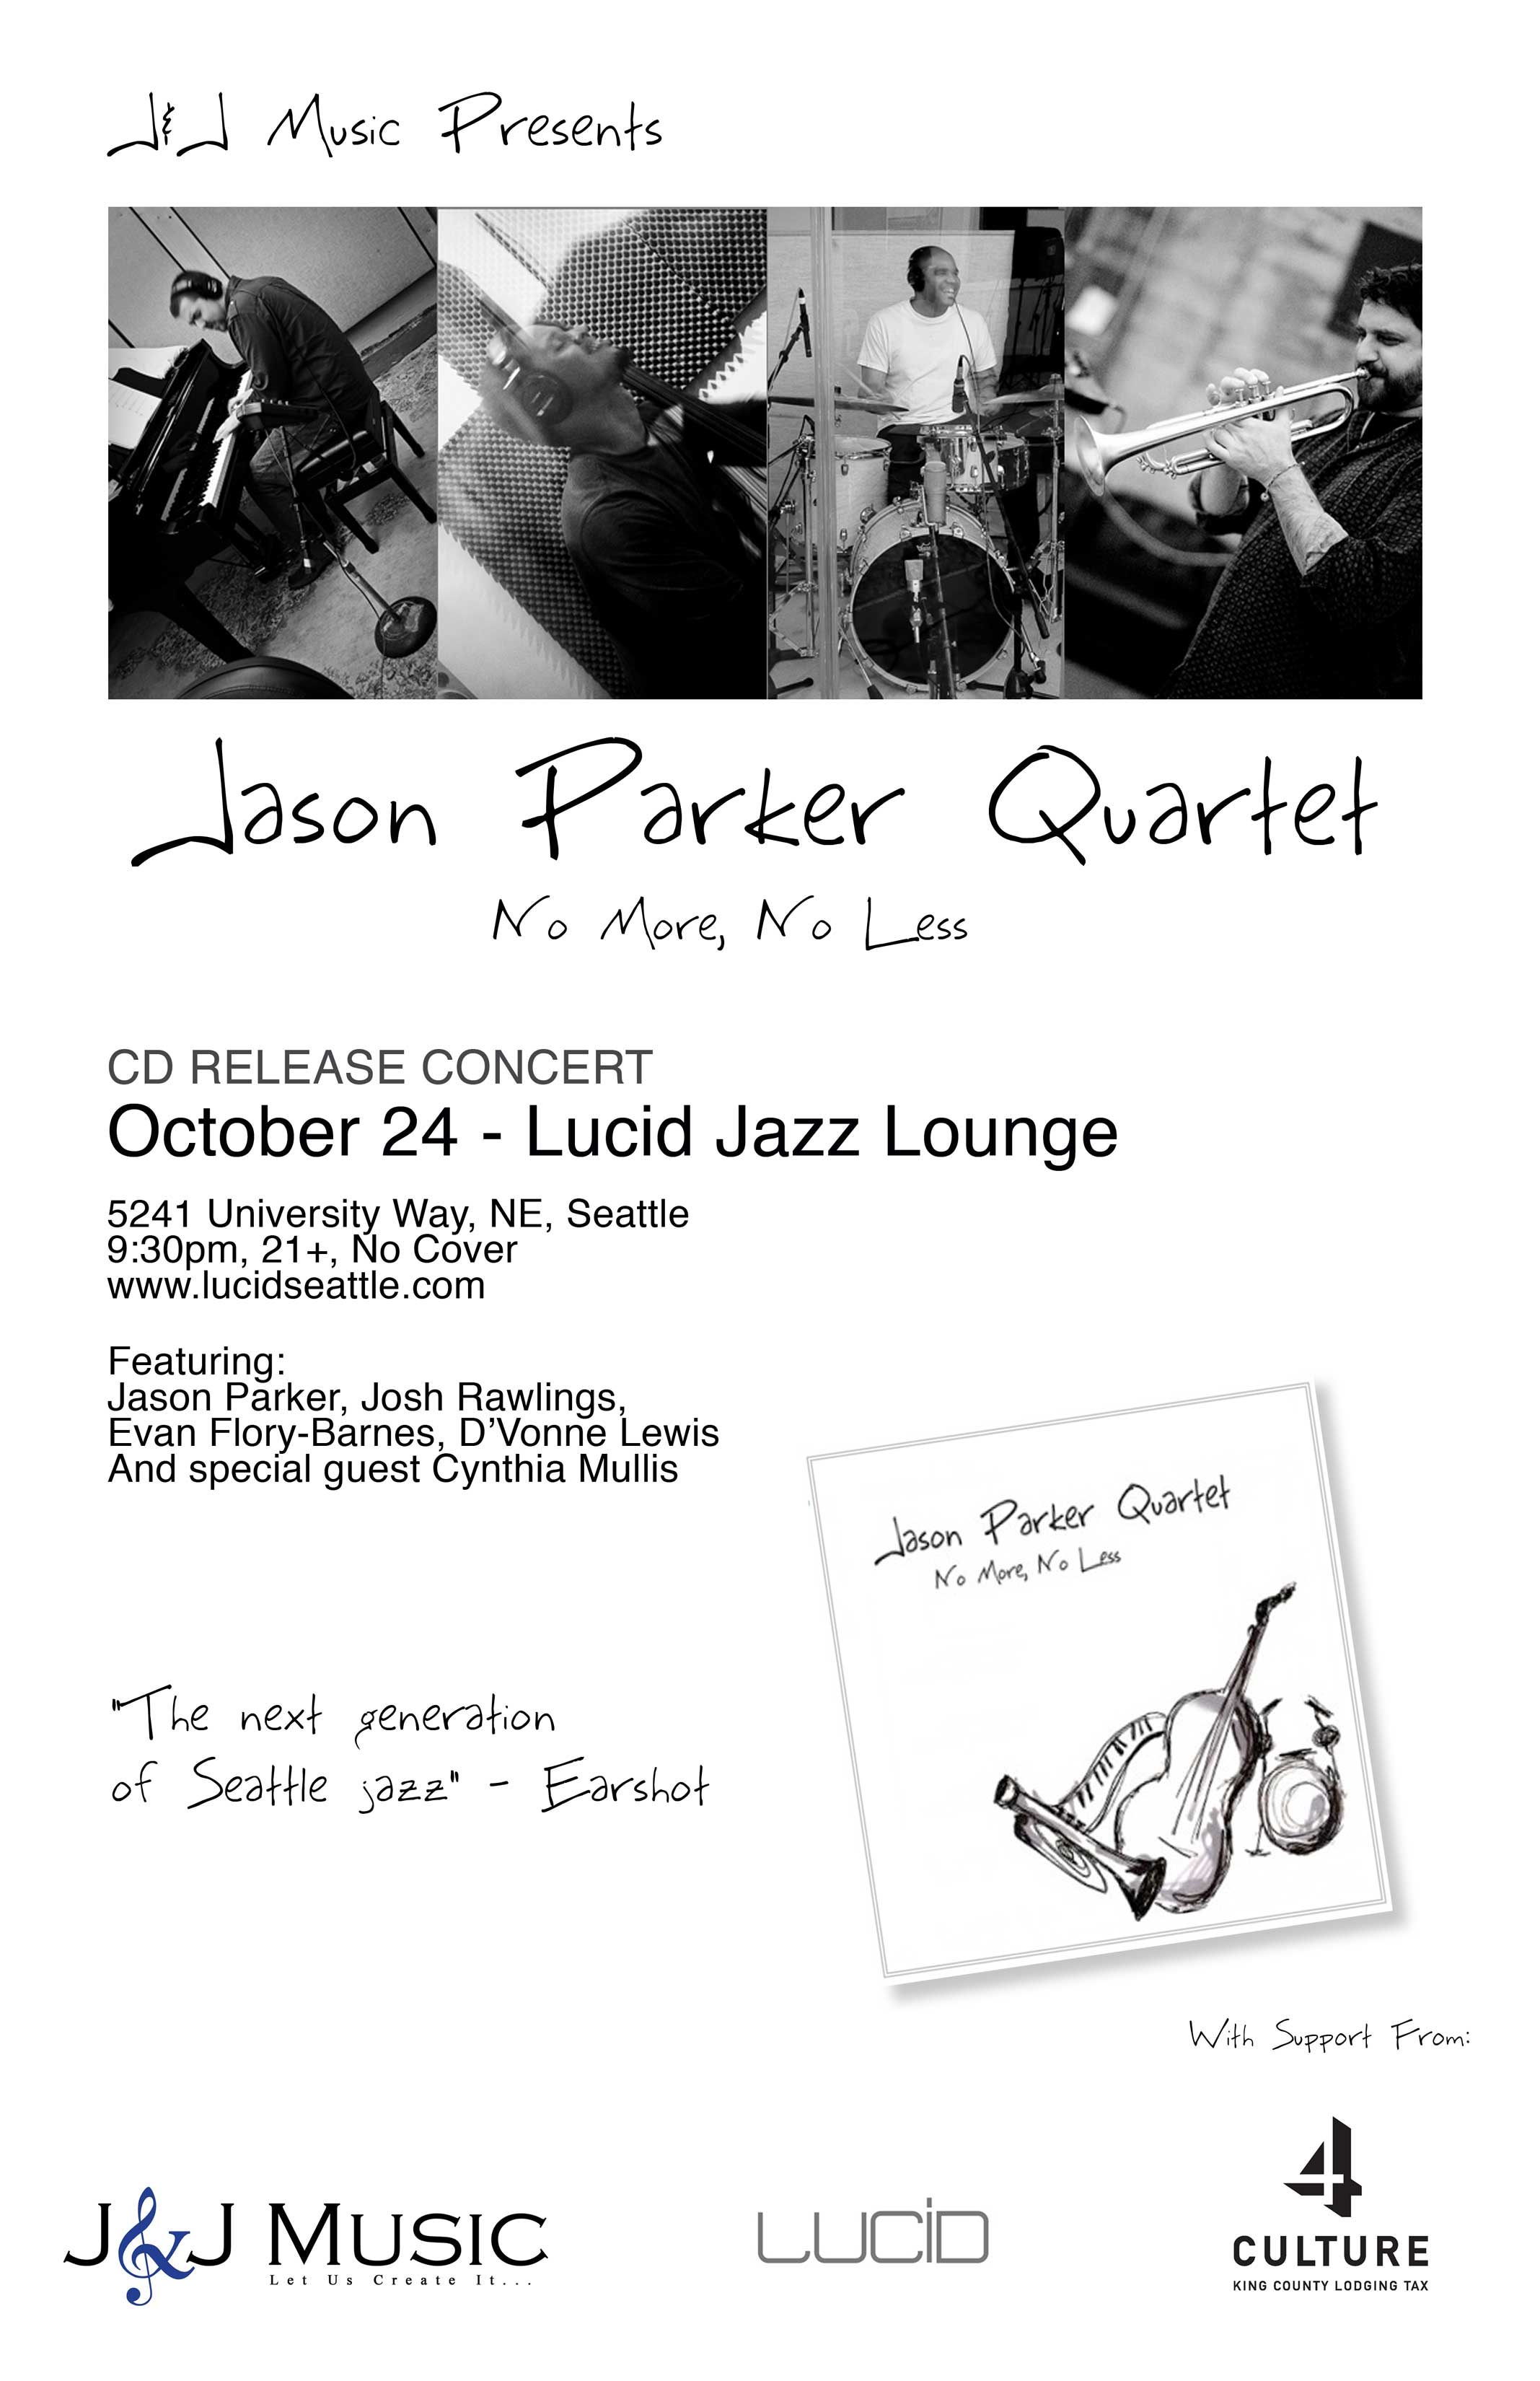 """No More, No Less"" by The Jason Parker Quartet to be Released on October 24, 2009"